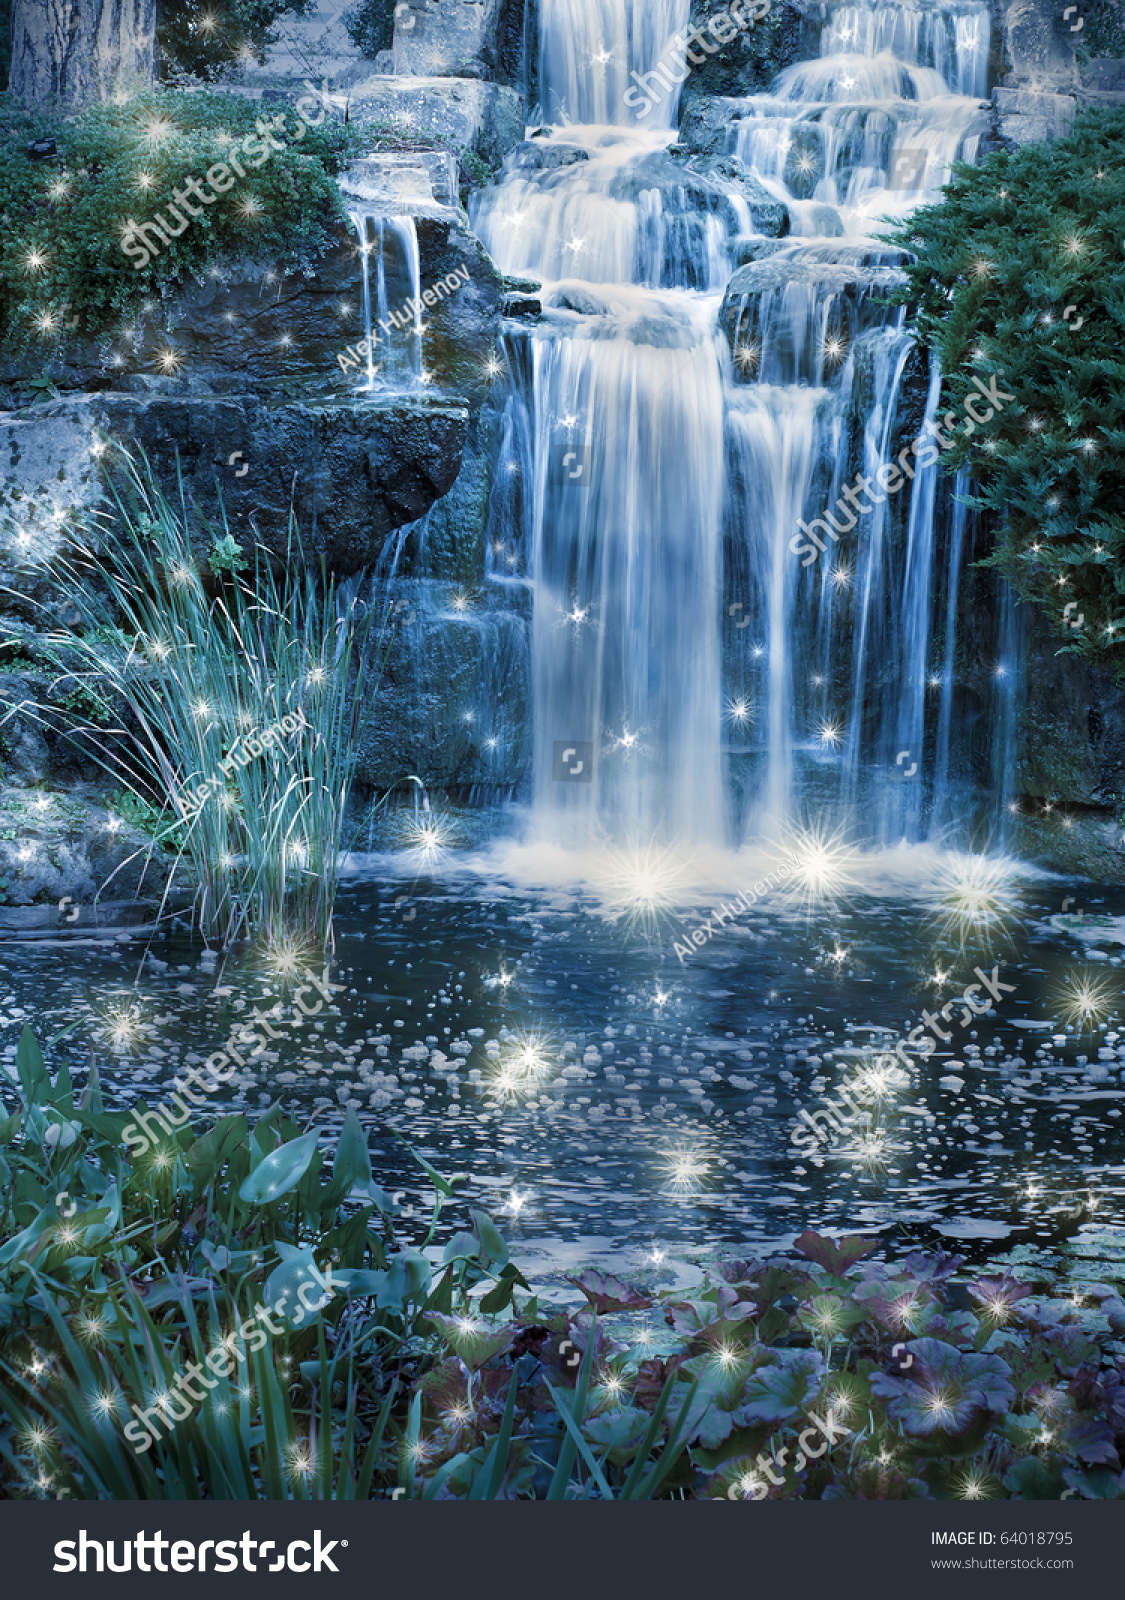 Cool Fall Wallpaper Magic Night Waterfall Scene Stock Photo 64018795